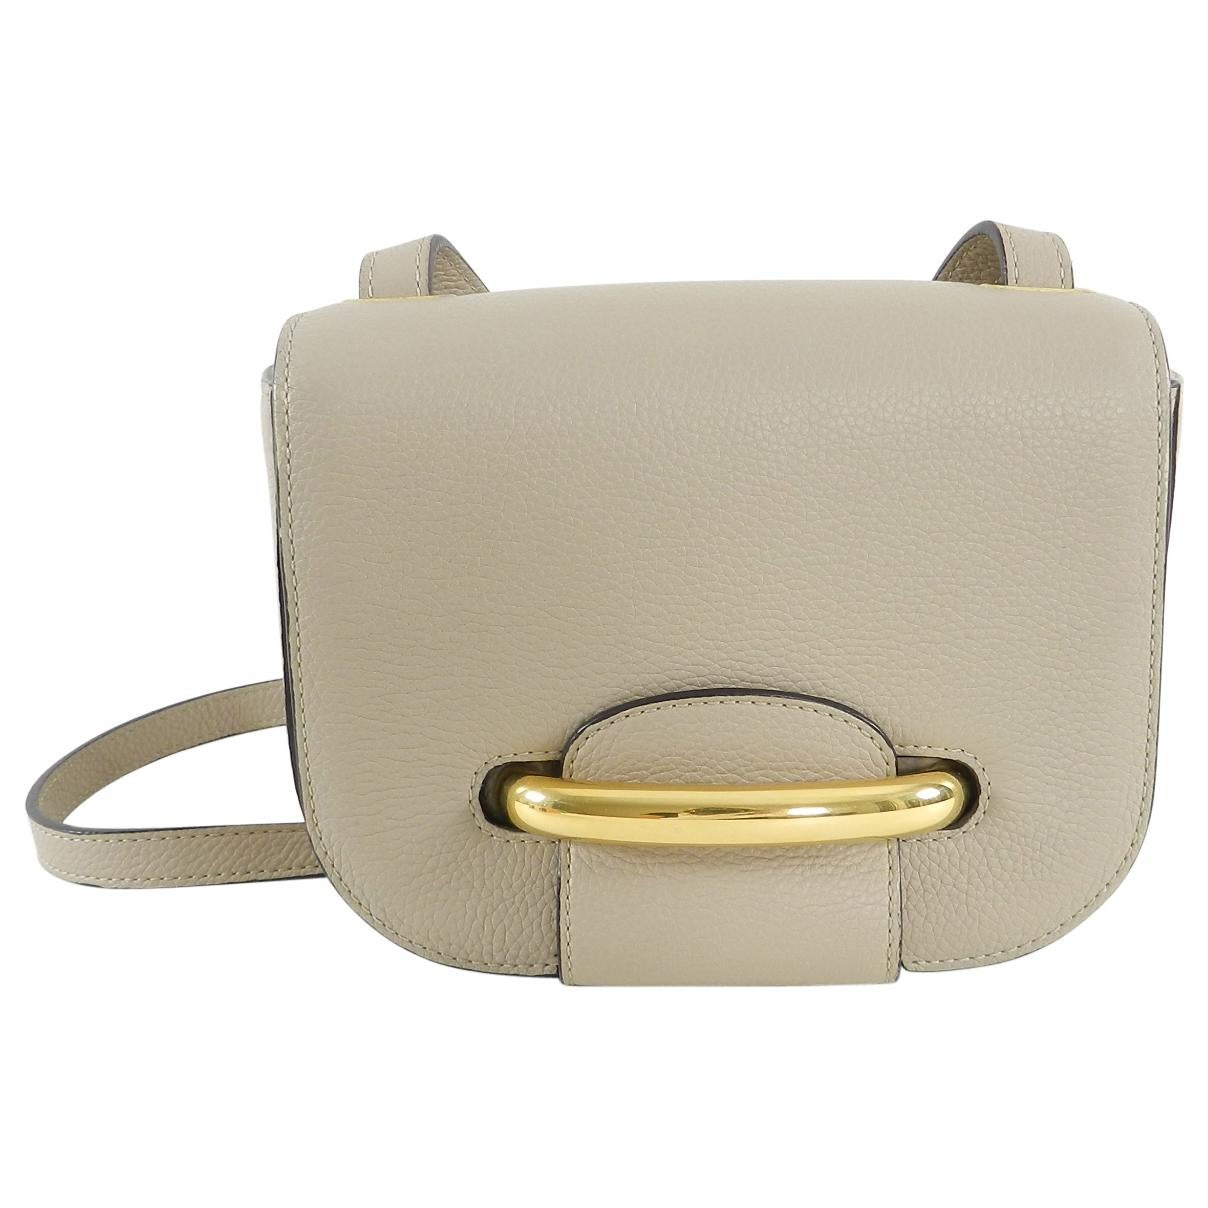 87e5134a0f6 ... leather hobo shoulder bag light coffee f24db 011cc official mulberry  small light taupe selwood bag with gold bar for sale 00cf0 4d8ab ...